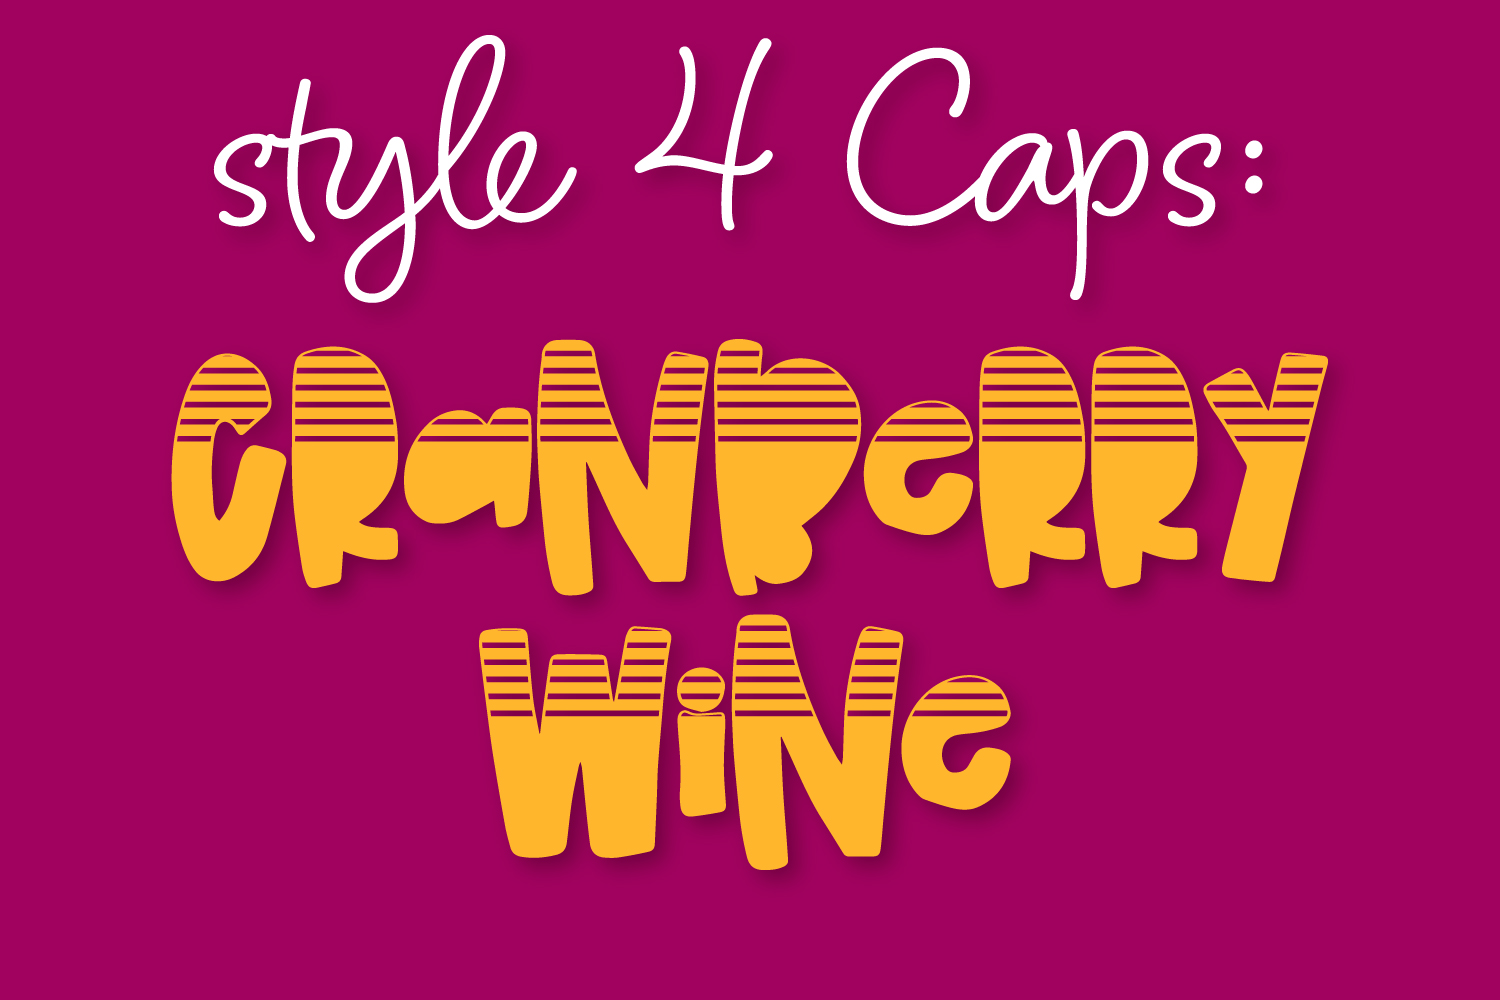 Cranberry Wine - A Striped Font Family of 6 New Fonts! example image 6